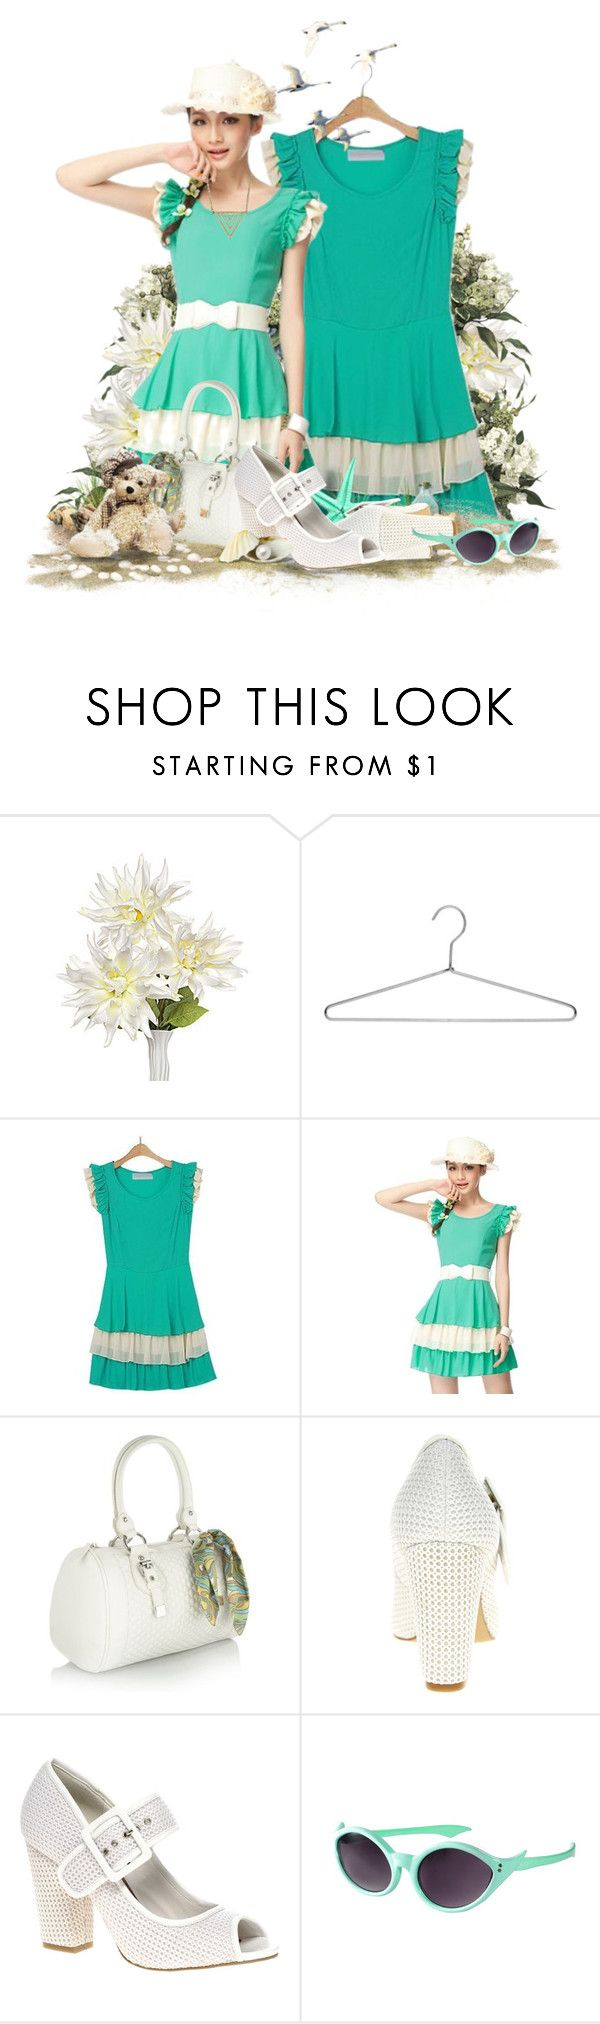 """""""Summer Breeze!"""" by keti-lady ❤ liked on Polyvore featuring Dahlia, Laundry, Red Herring, ASOS, heels, white, turquoise, assos, summer and dresses"""